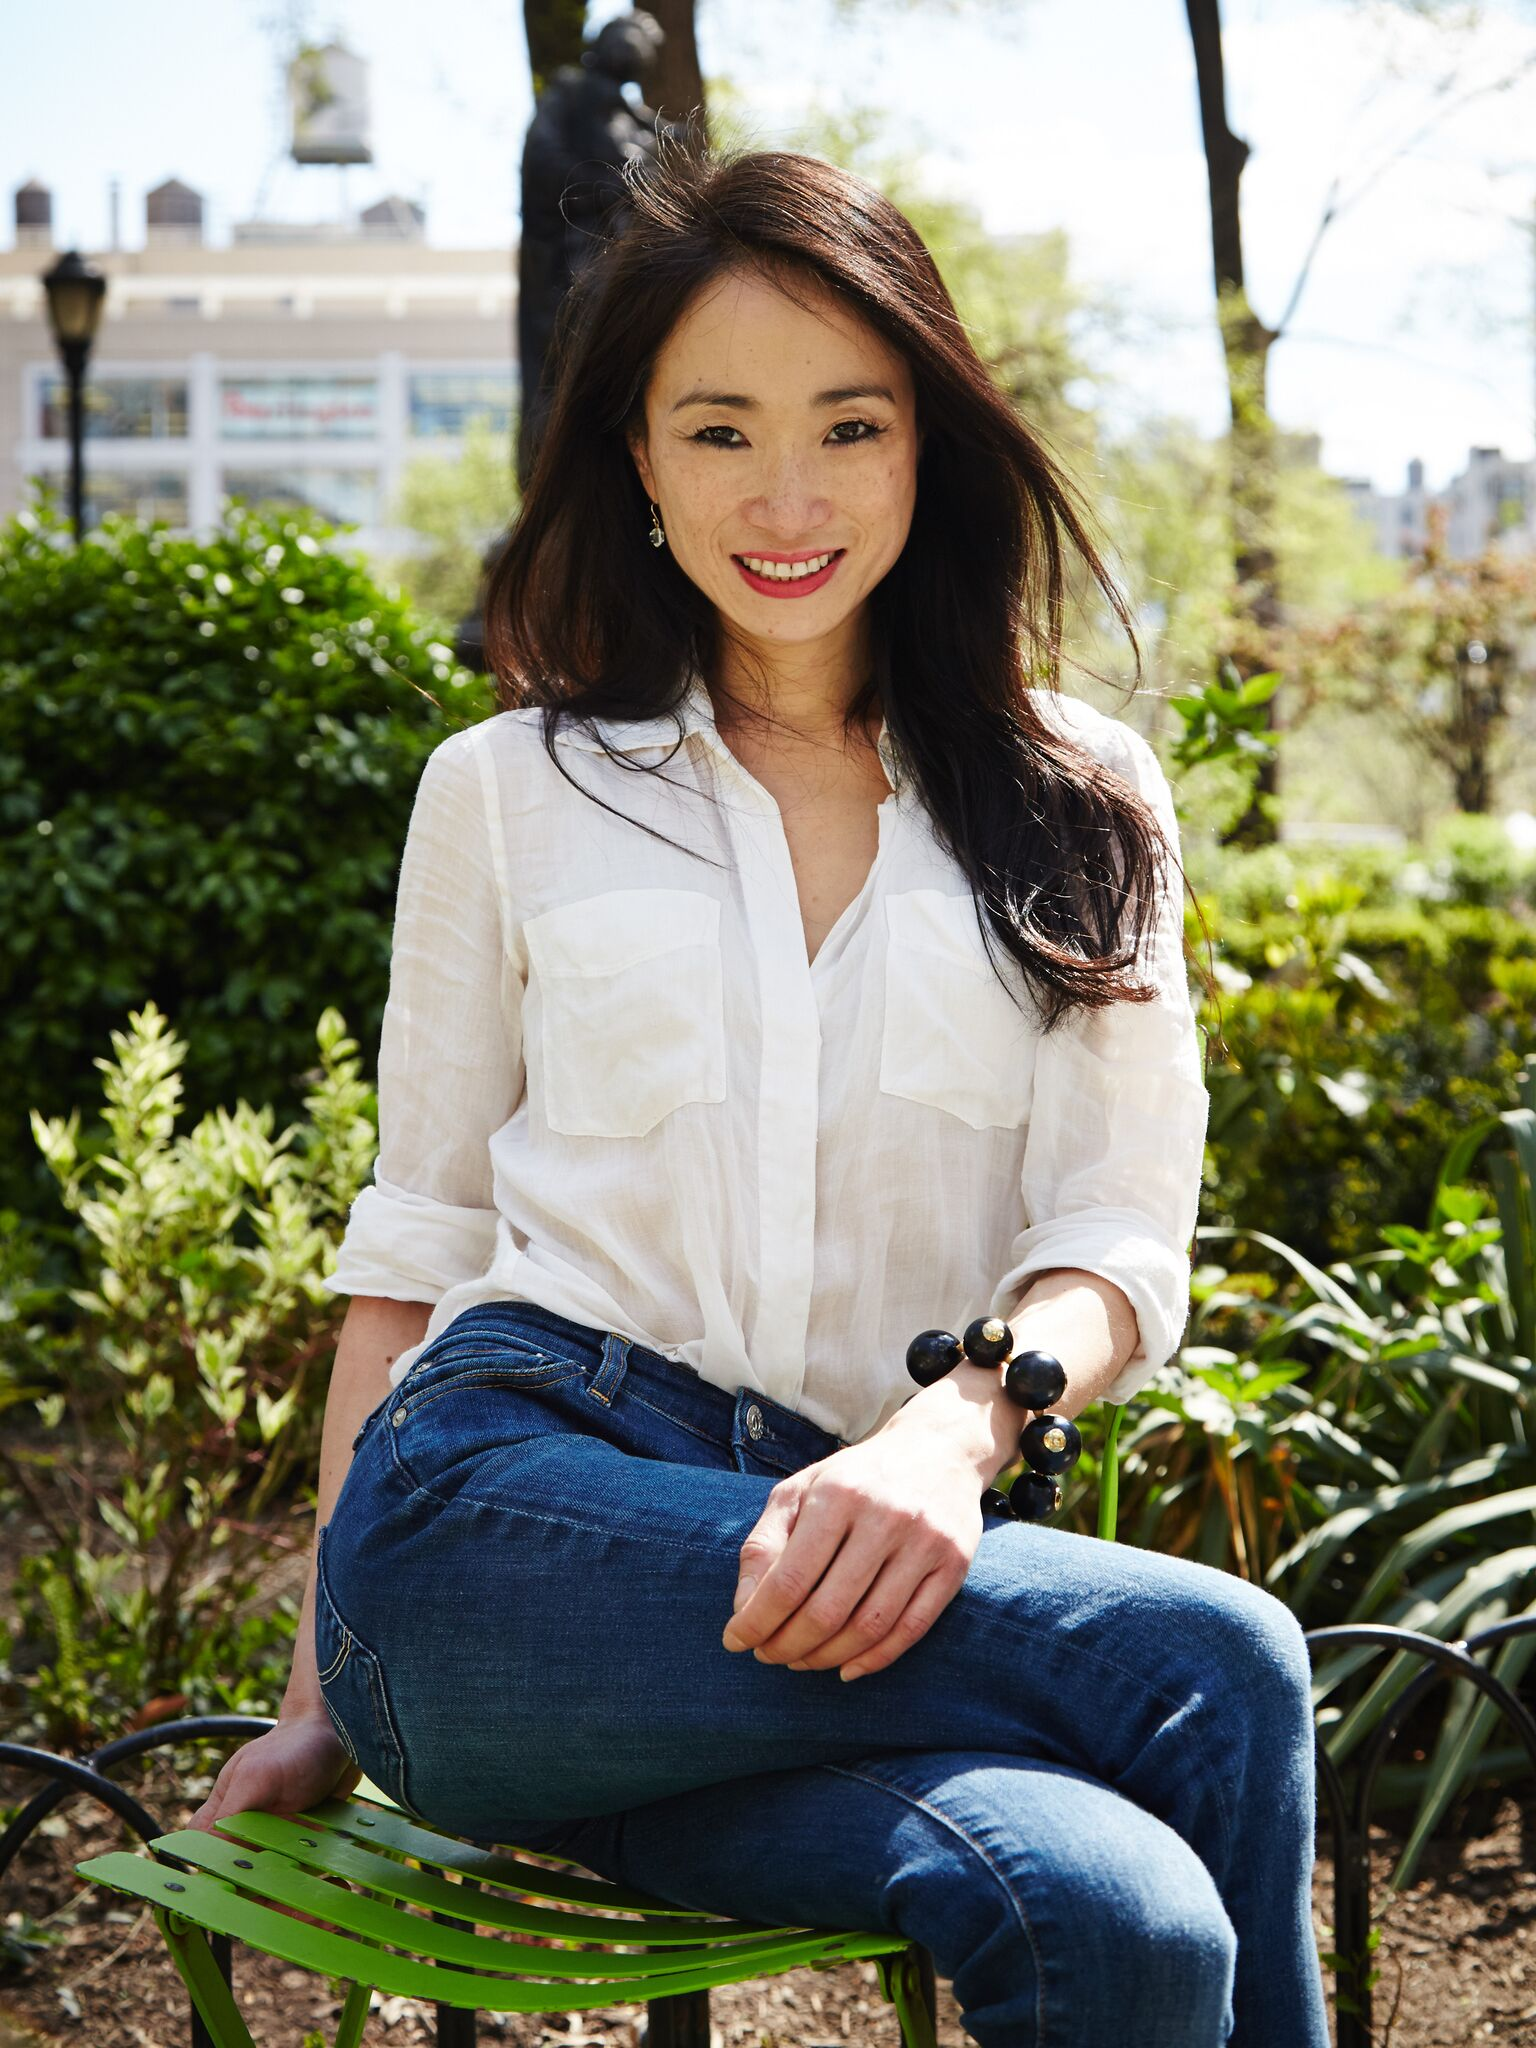 Danielle Chang - Founder of Luckyrice